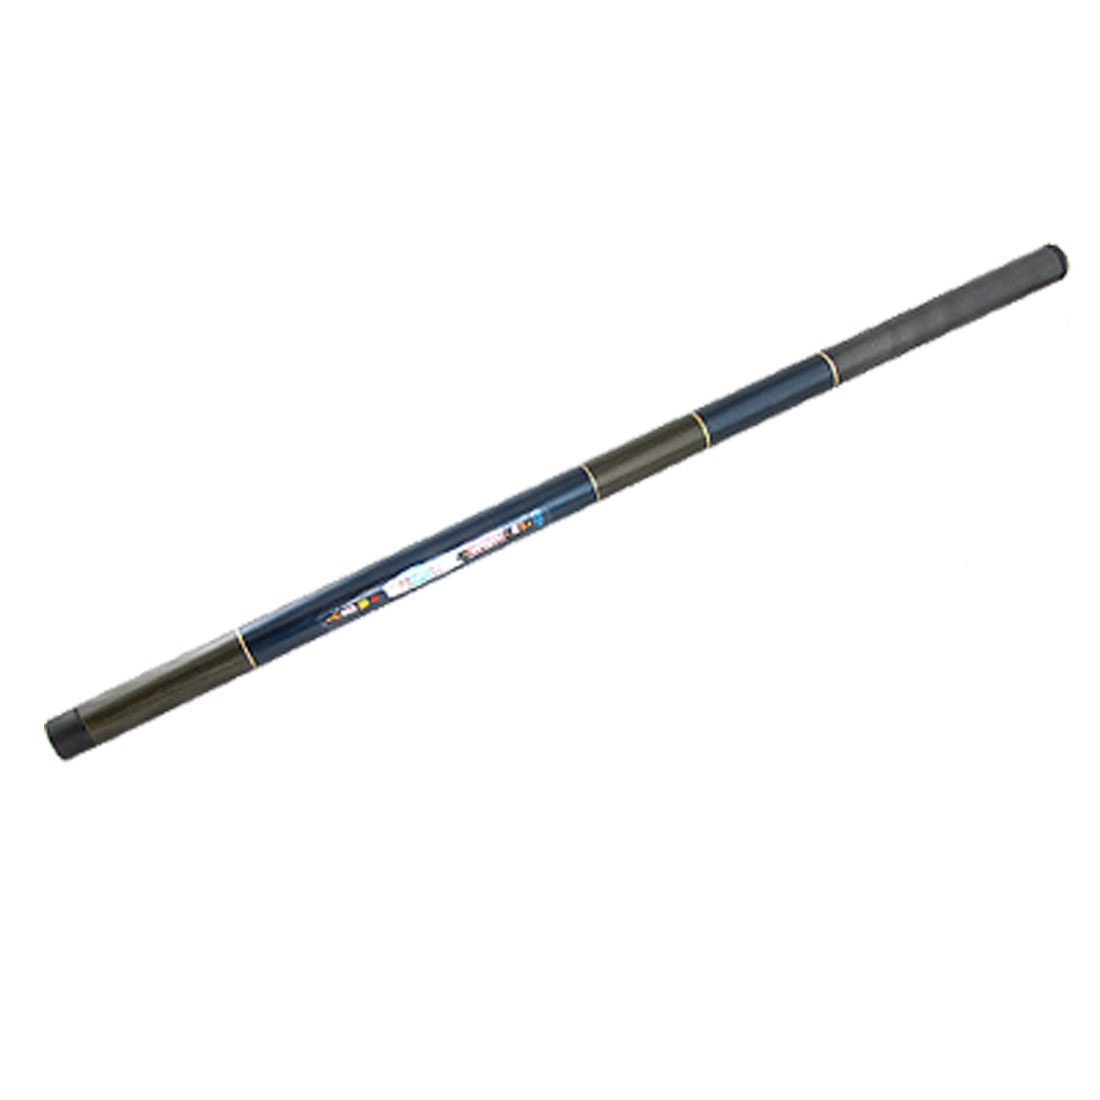 Compact Travel Telescopic Fishing Rod Pole with 9 Section